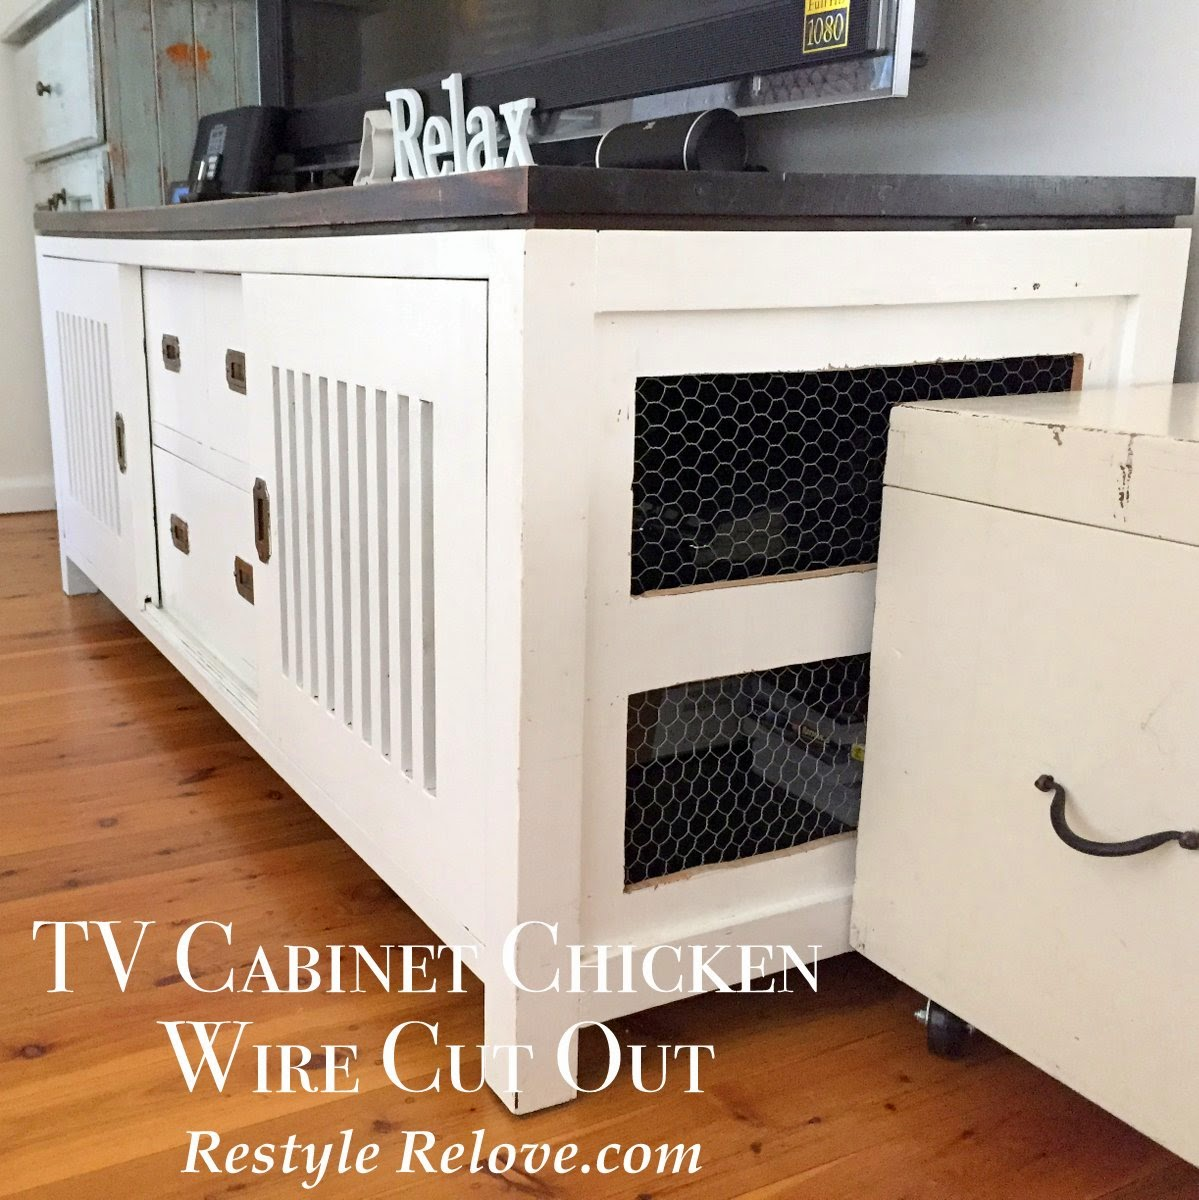 TV Cabinet Chicken Wire Cut Outs